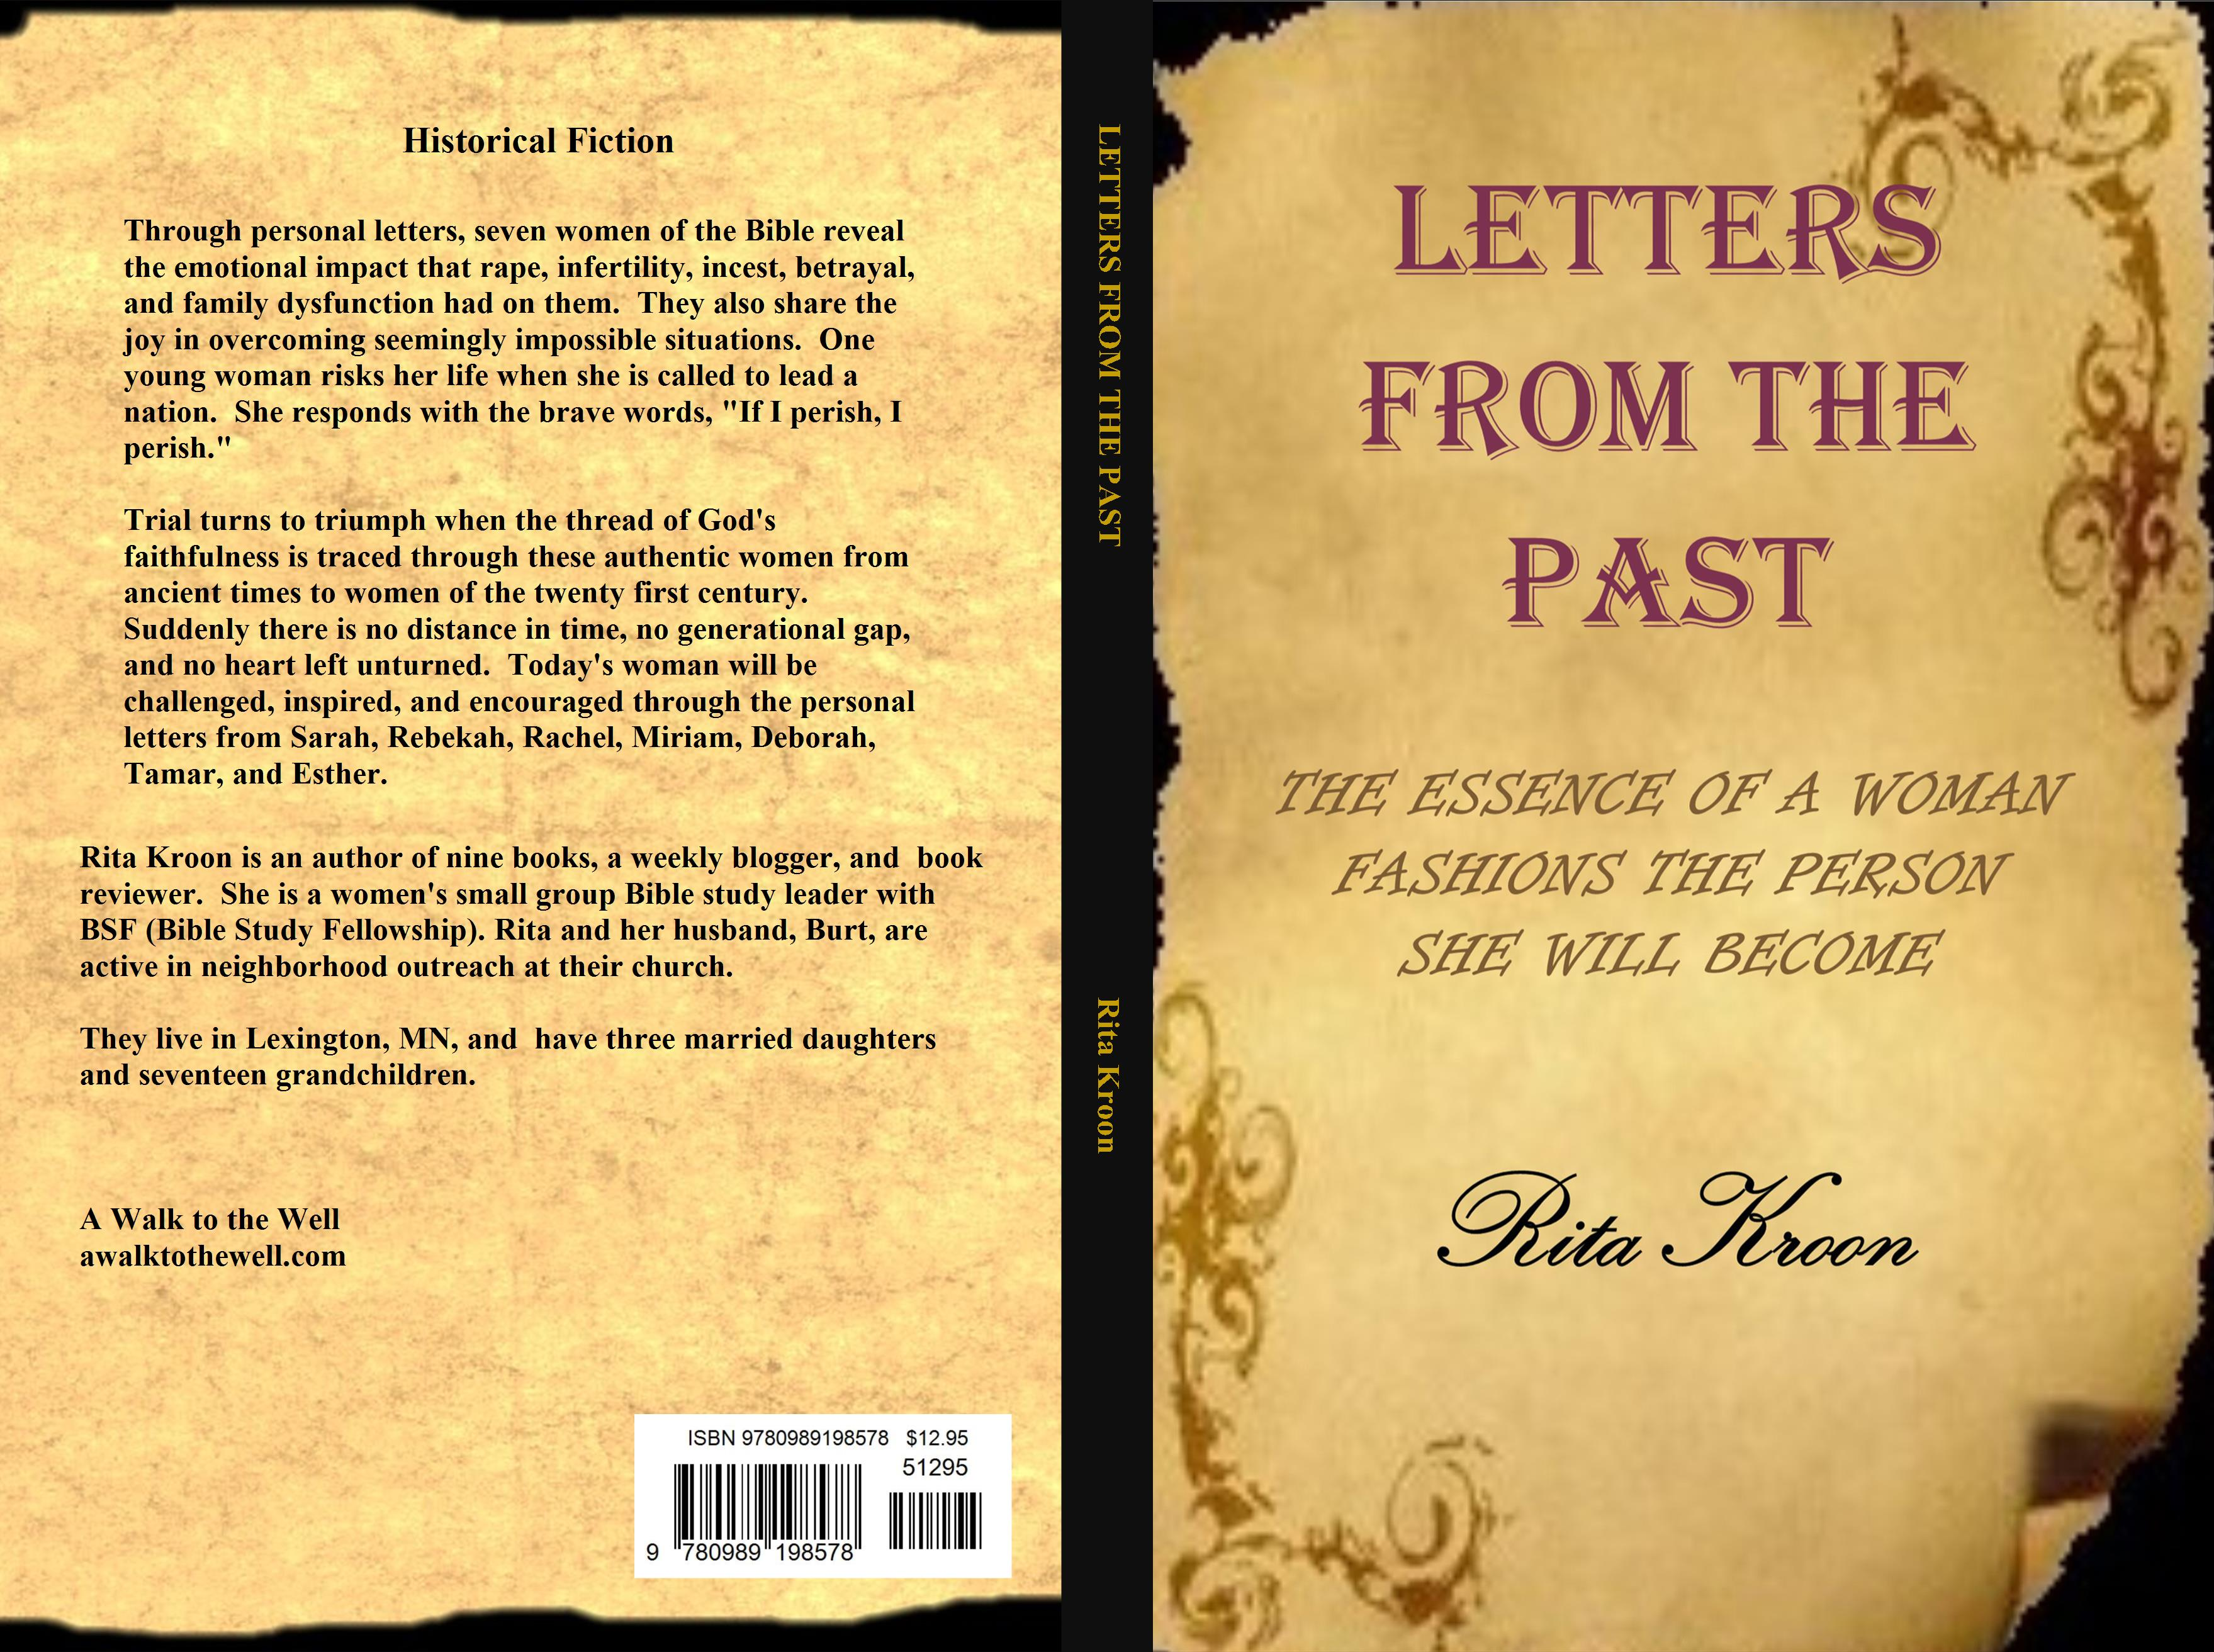 LETTERS FROM THE PAST cover image